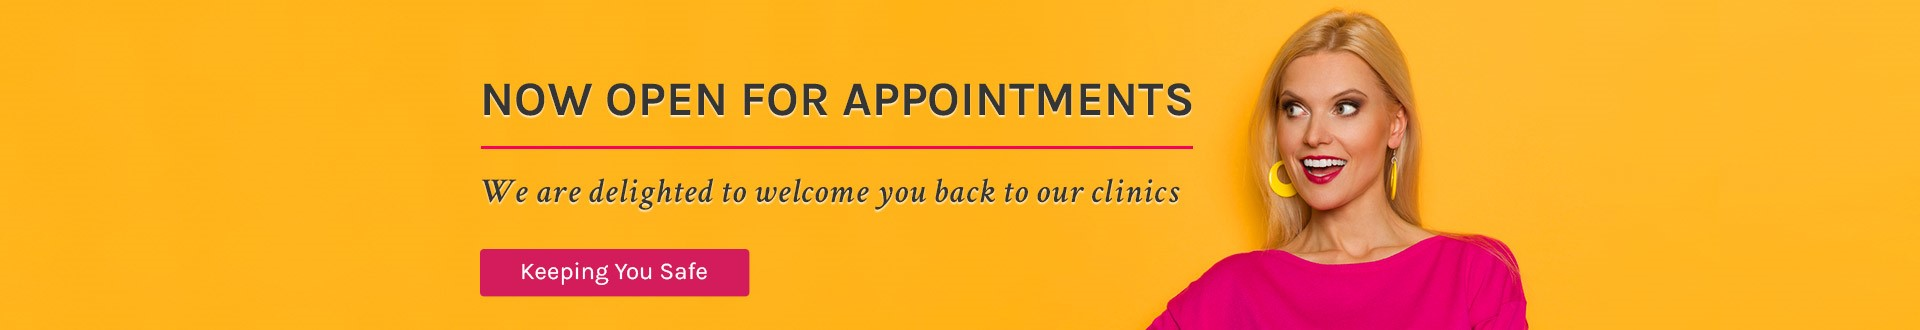 Now open for appointments - we are delighted to welcome you back to our clinics